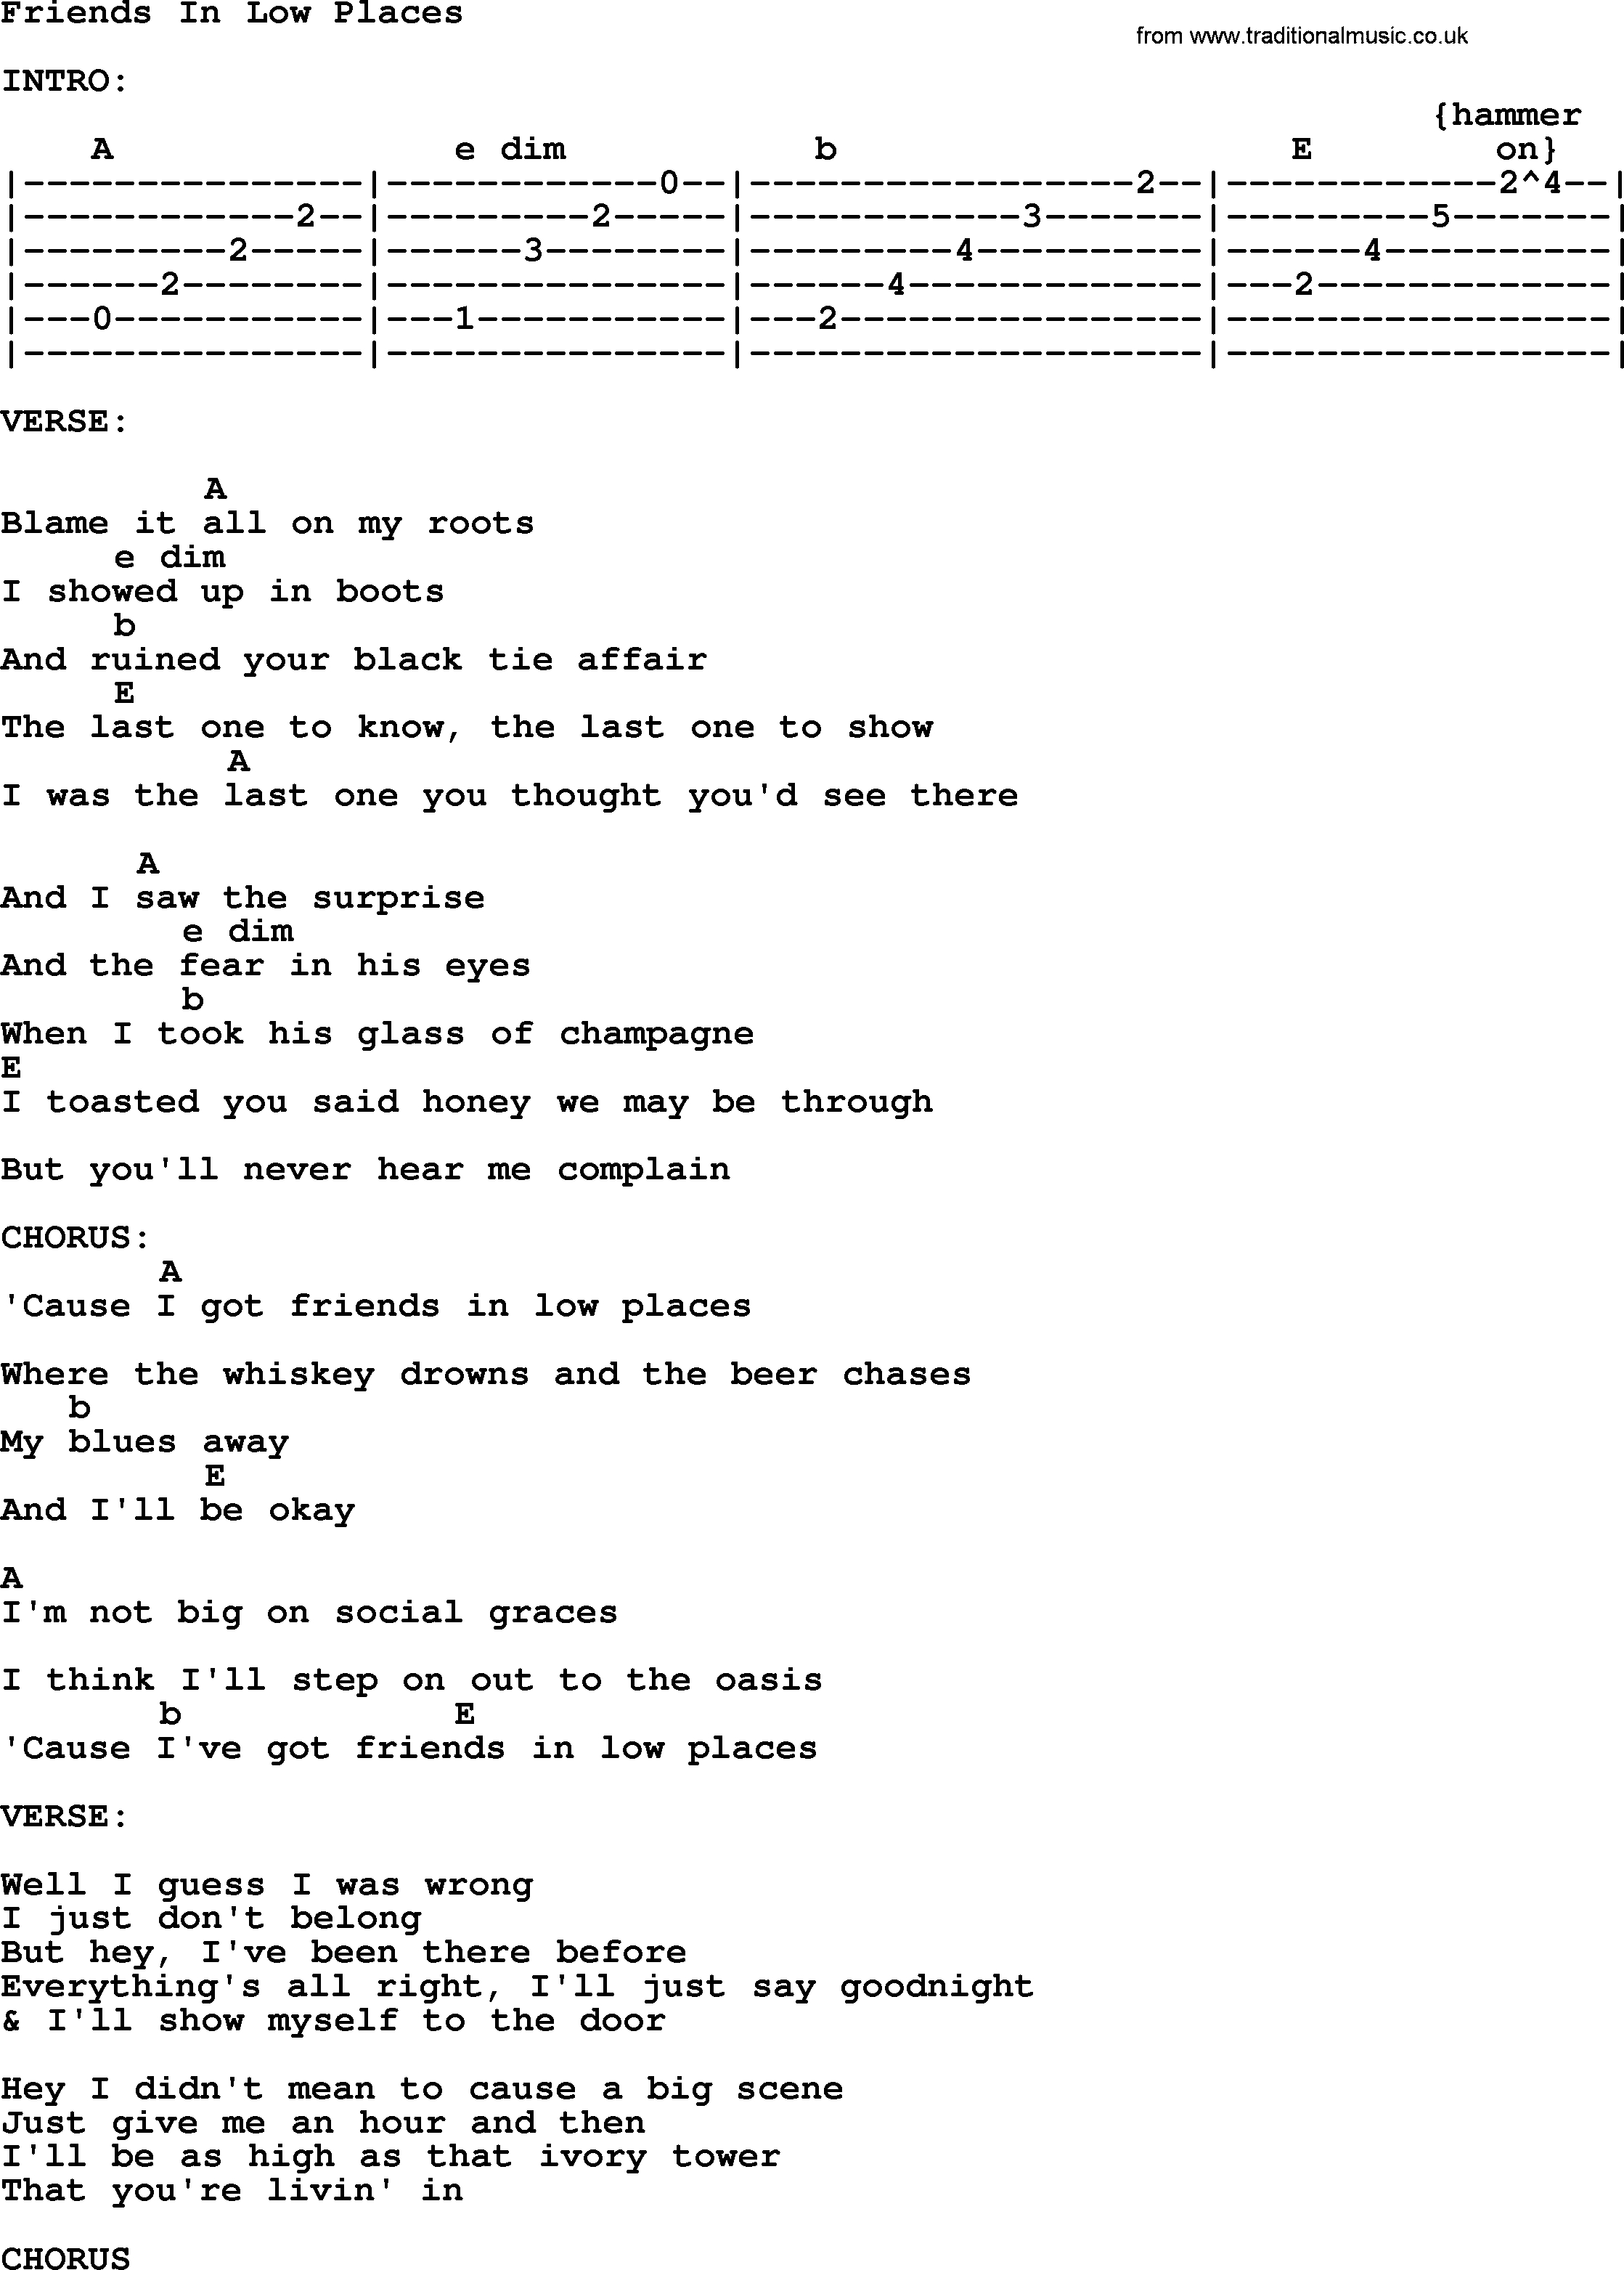 Friends In Low Places Chords Friends In Low Places Garth Brooks Lyrics And Chords